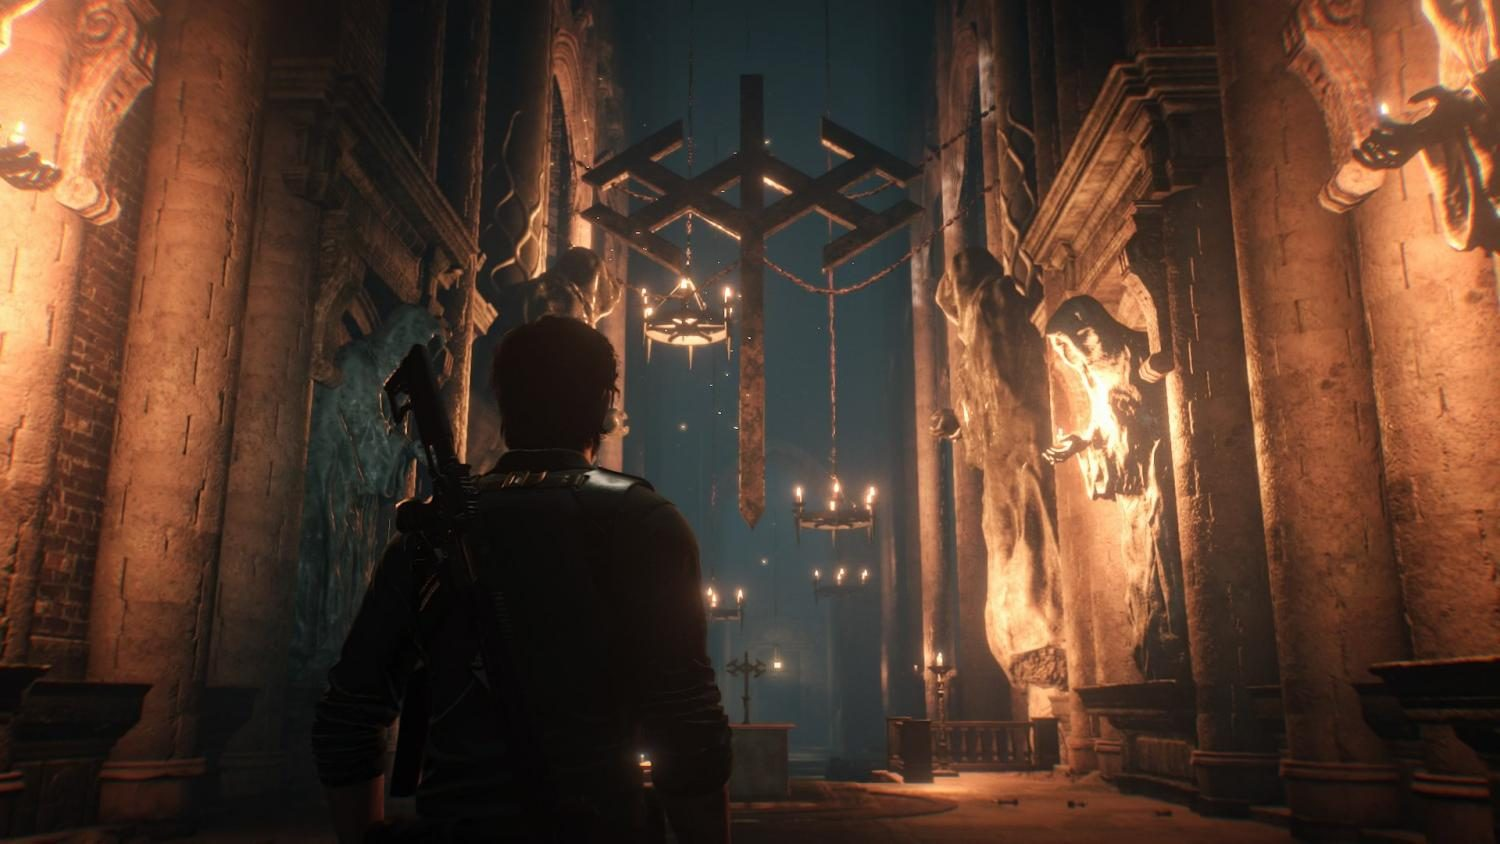 Sebastian enters a demonic church. The best moments of horror and fear come from this section of the game. Photo credit: Ulises Duenas